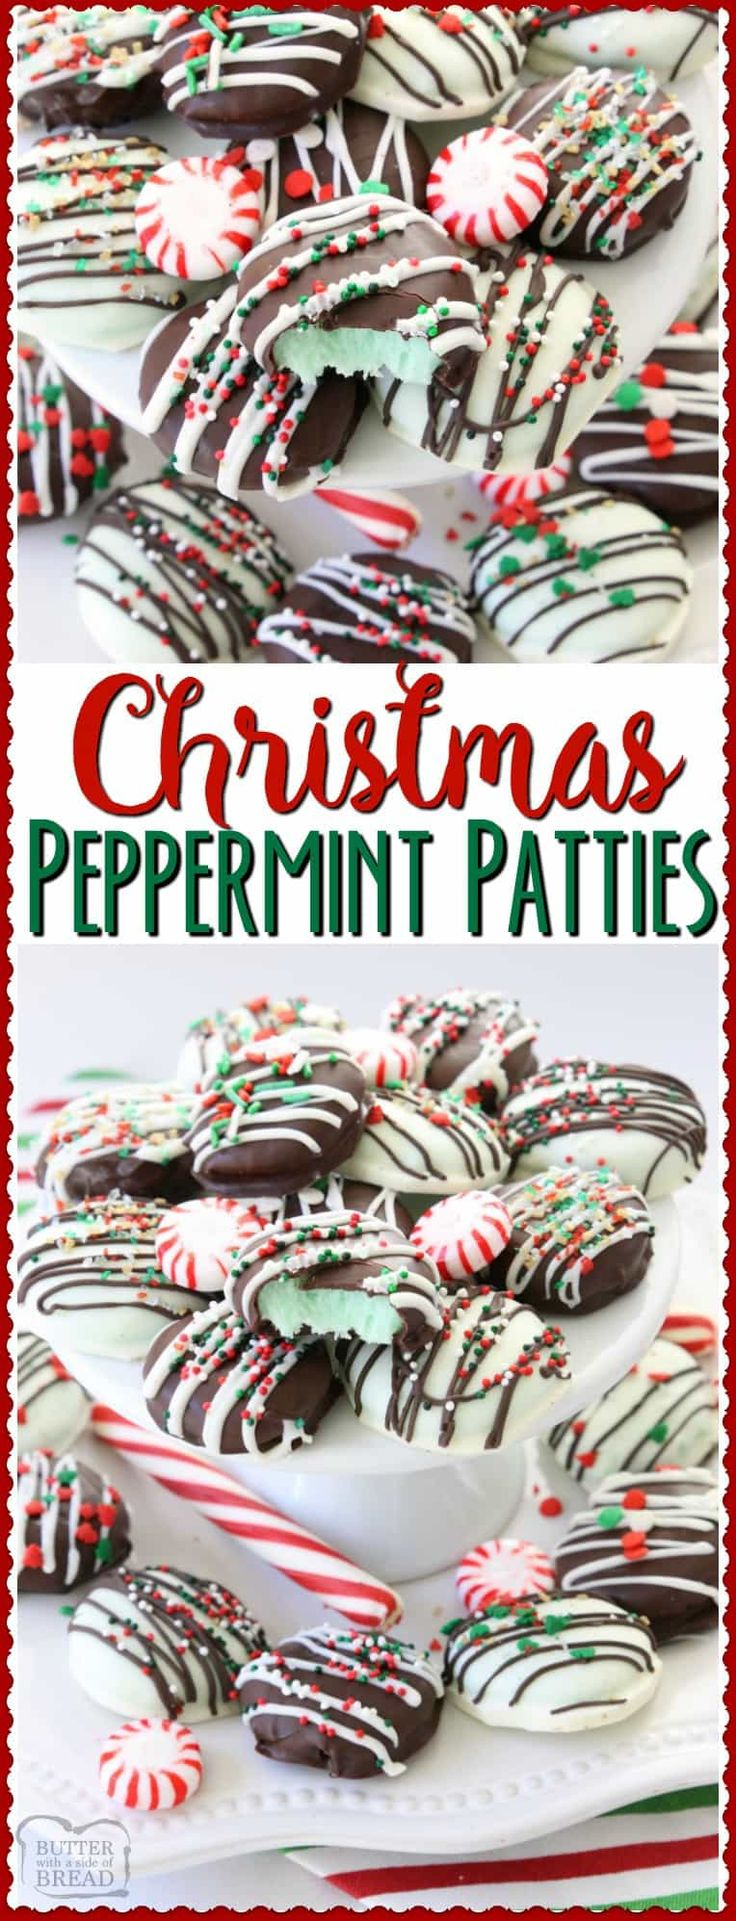 Christmas Peppermint Patties made easy with few ingredients! Perfect fun & festive dessert for holiday parties & gifts. They taste so much better homemade! Easy peppermint candy chocolate Christmas holiday recipe.